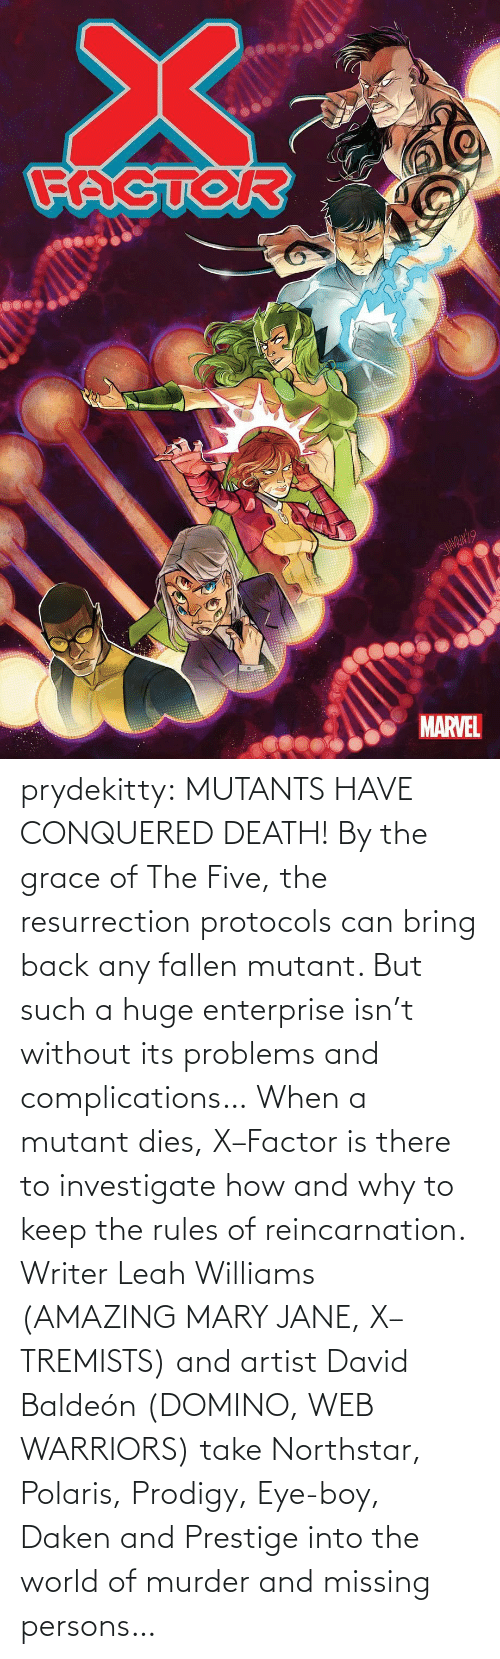 Murder: prydekitty:  MUTANTS HAVE CONQUERED DEATH! By the grace of The Five, the resurrection protocols can bring back any fallen mutant. But such a huge enterprise isn't without its problems and complications… When a mutant dies, X–Factor is there to investigate how and why to keep the rules of reincarnation. Writer Leah Williams (AMAZING MARY JANE, X–TREMISTS) and artist David Baldeón (DOMINO, WEB WARRIORS) take Northstar, Polaris, Prodigy, Eye-boy, Daken and Prestige into the world of murder and missing persons…